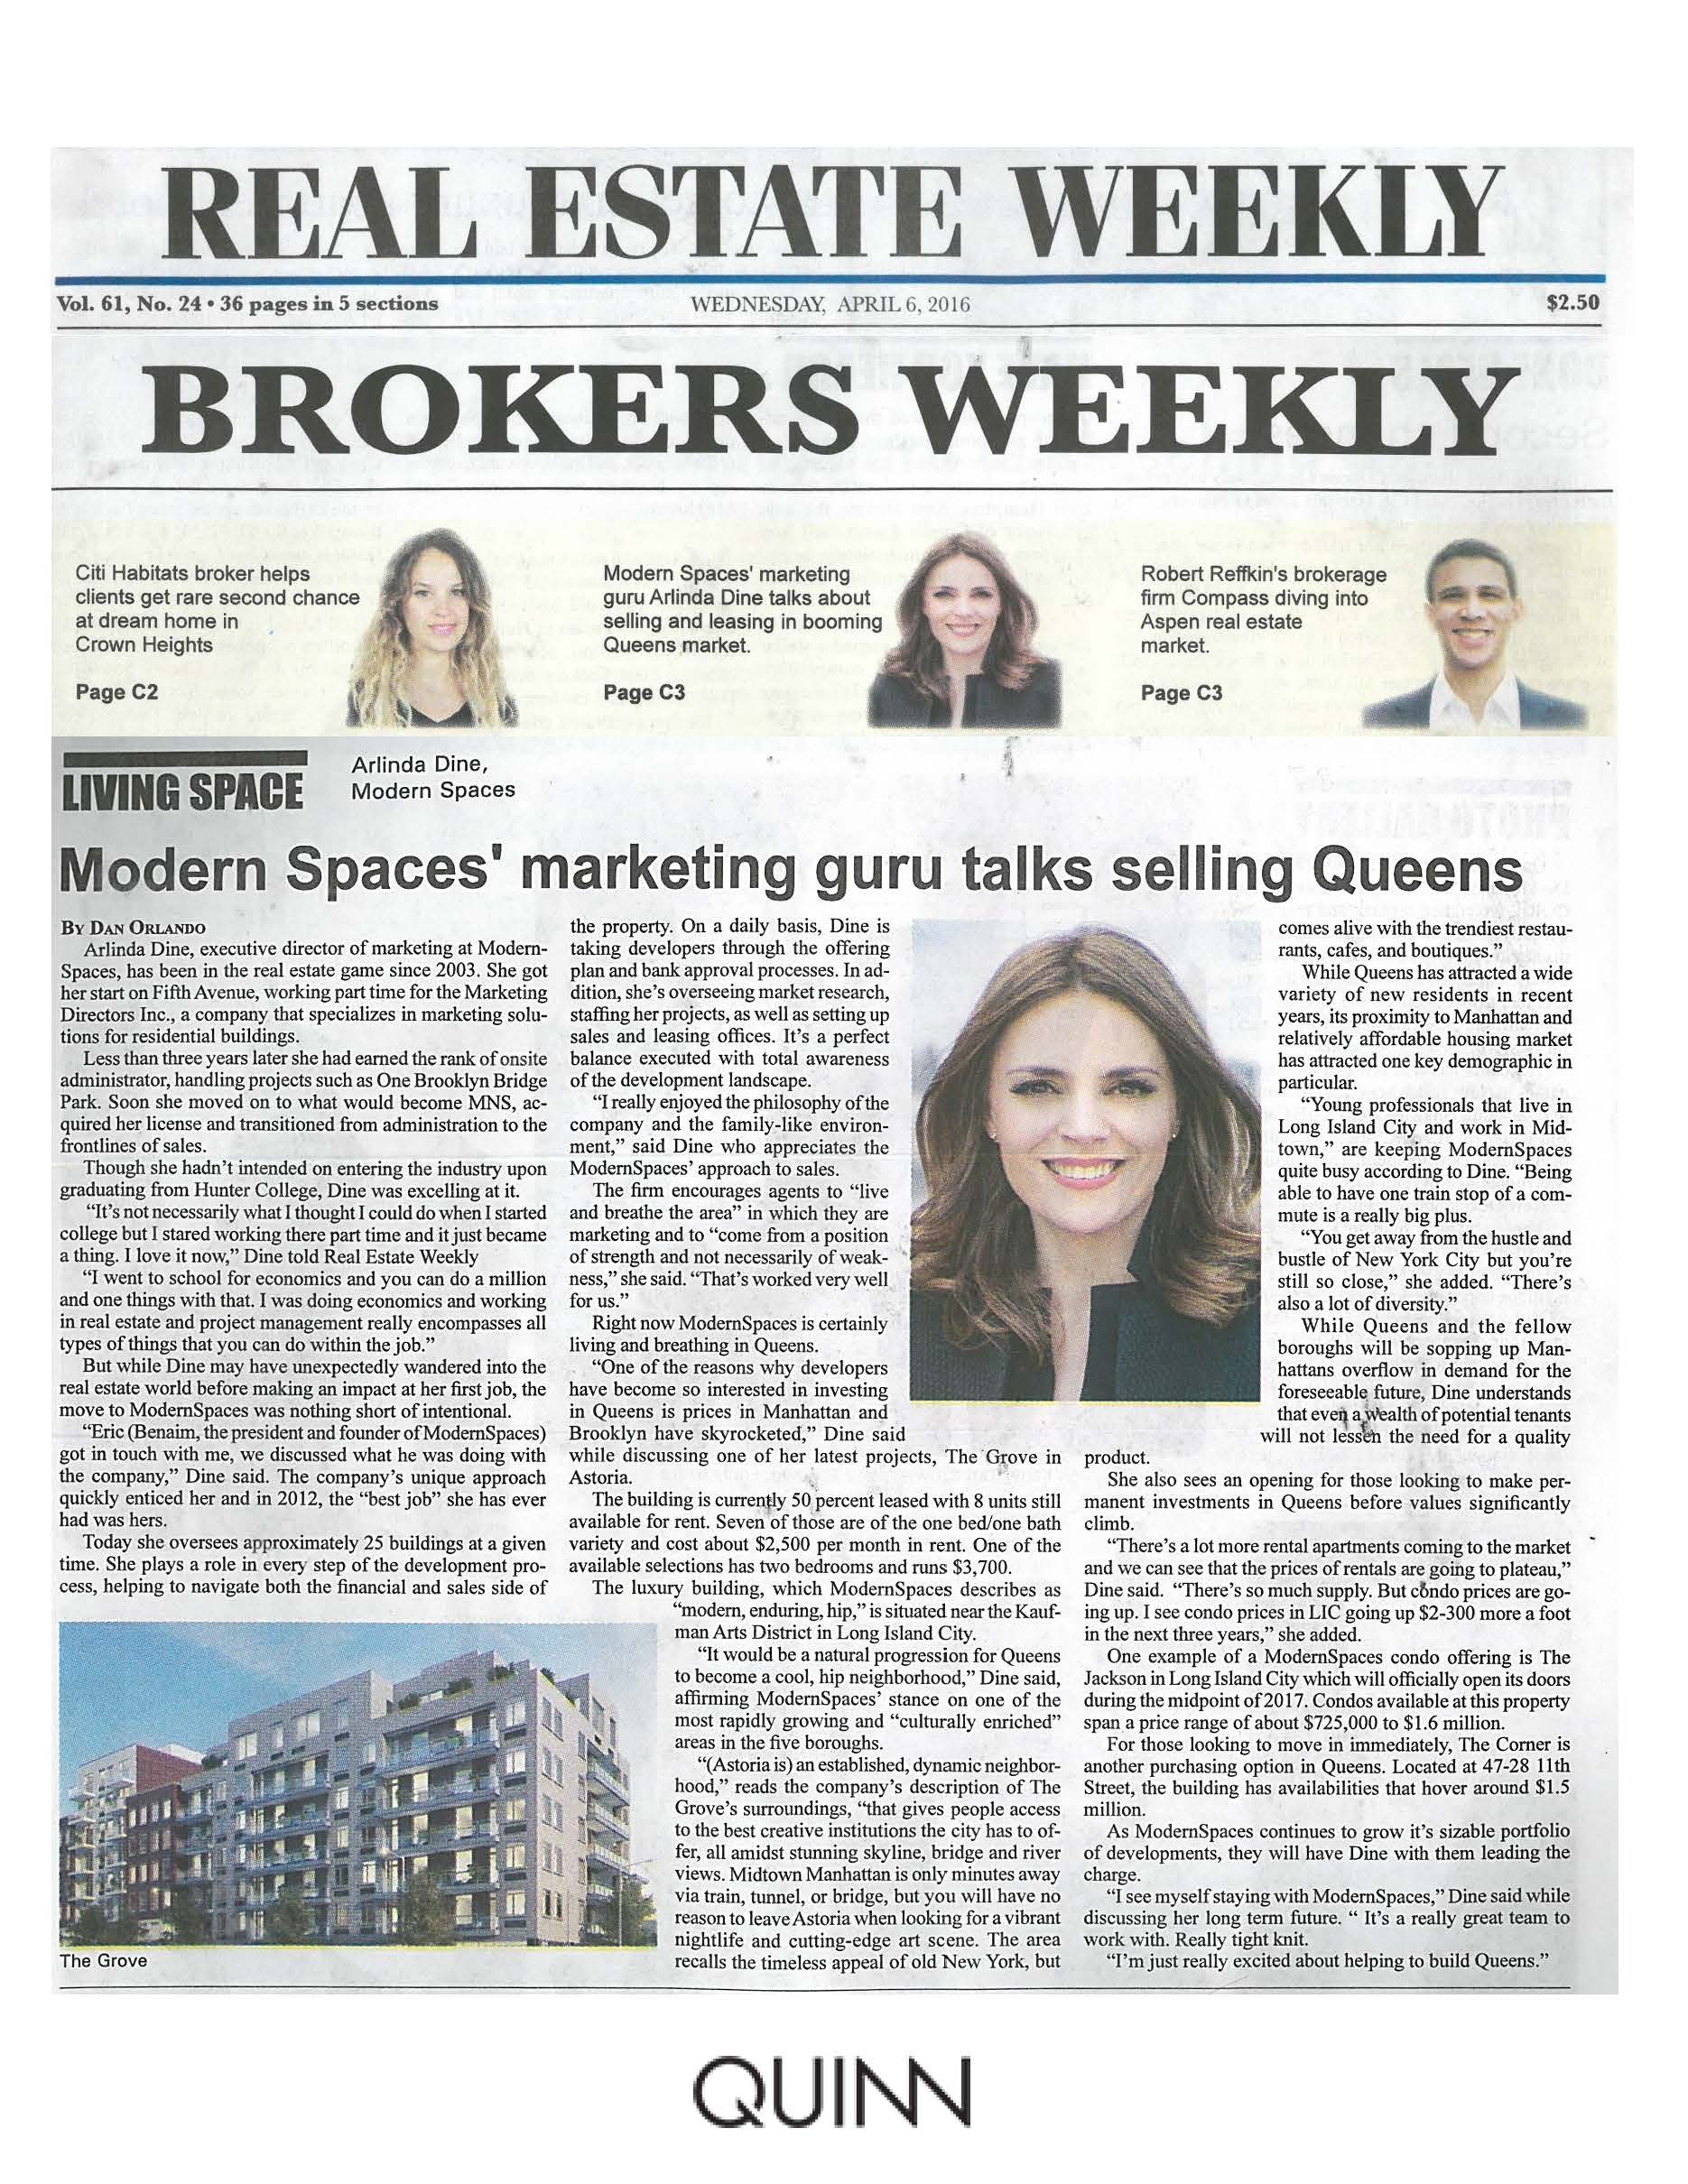 Real Estate Weekly- Modern Spaces' Marketing Guru Talks Selling Queens 4.6.16 (1)